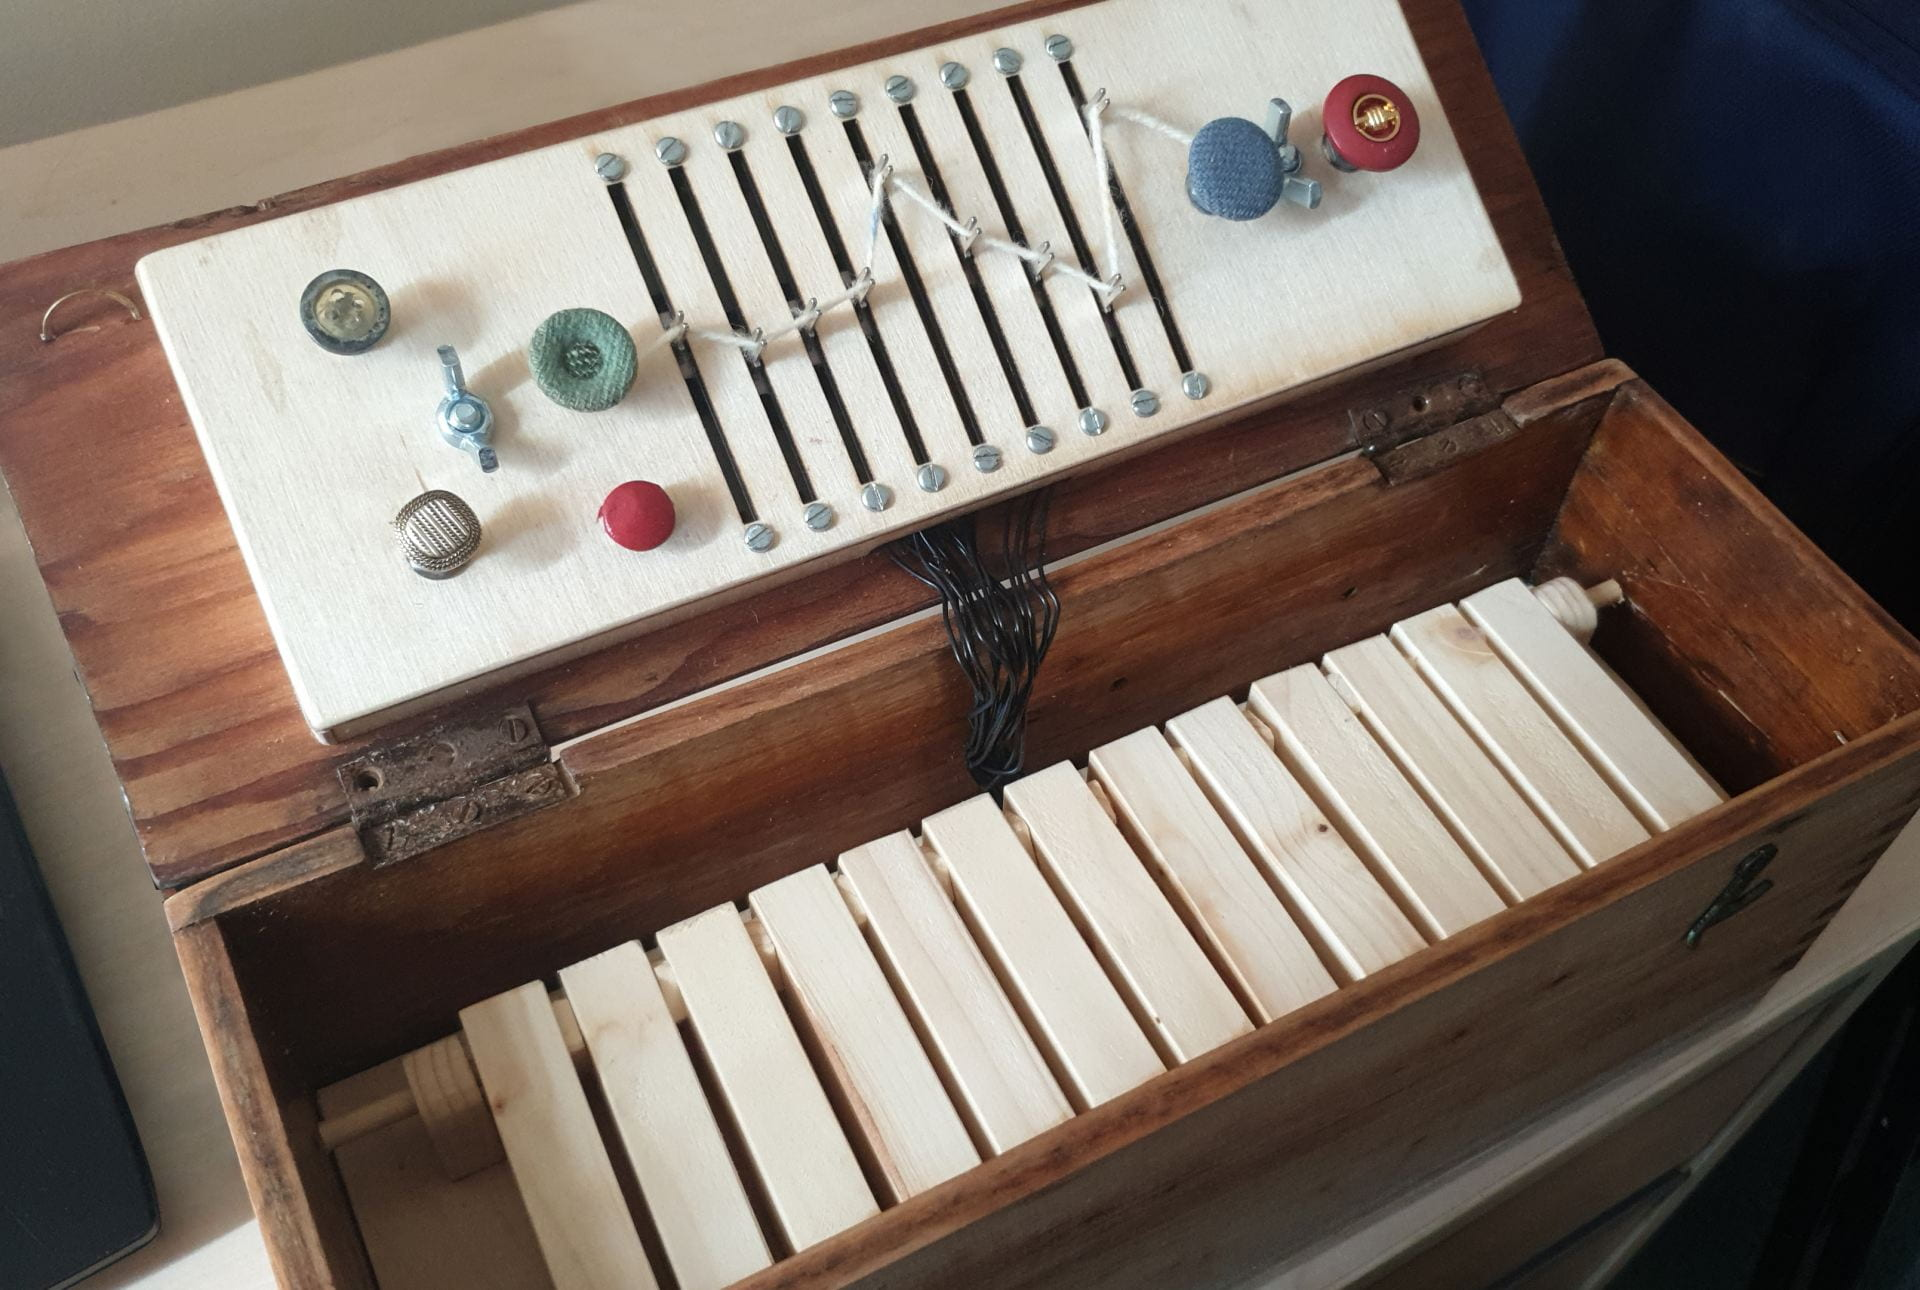 An old wooden box, with a wooden dashboard, and keys connected by wires.